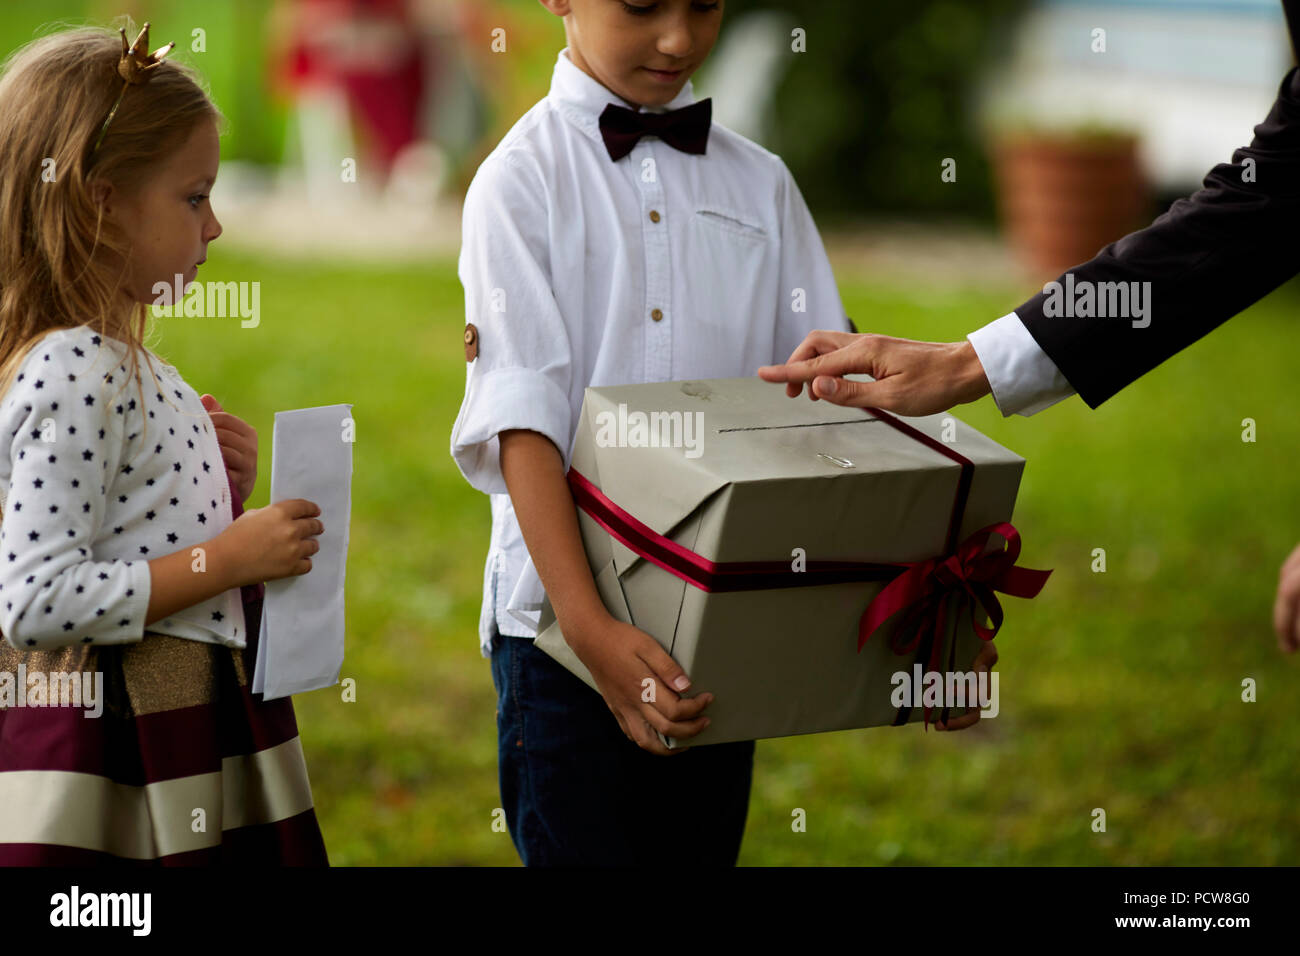 Father giving present to son. Happy smiling Boy receiving a gift. Happy family, Birthday, New year, Christmas concept - Stock Image